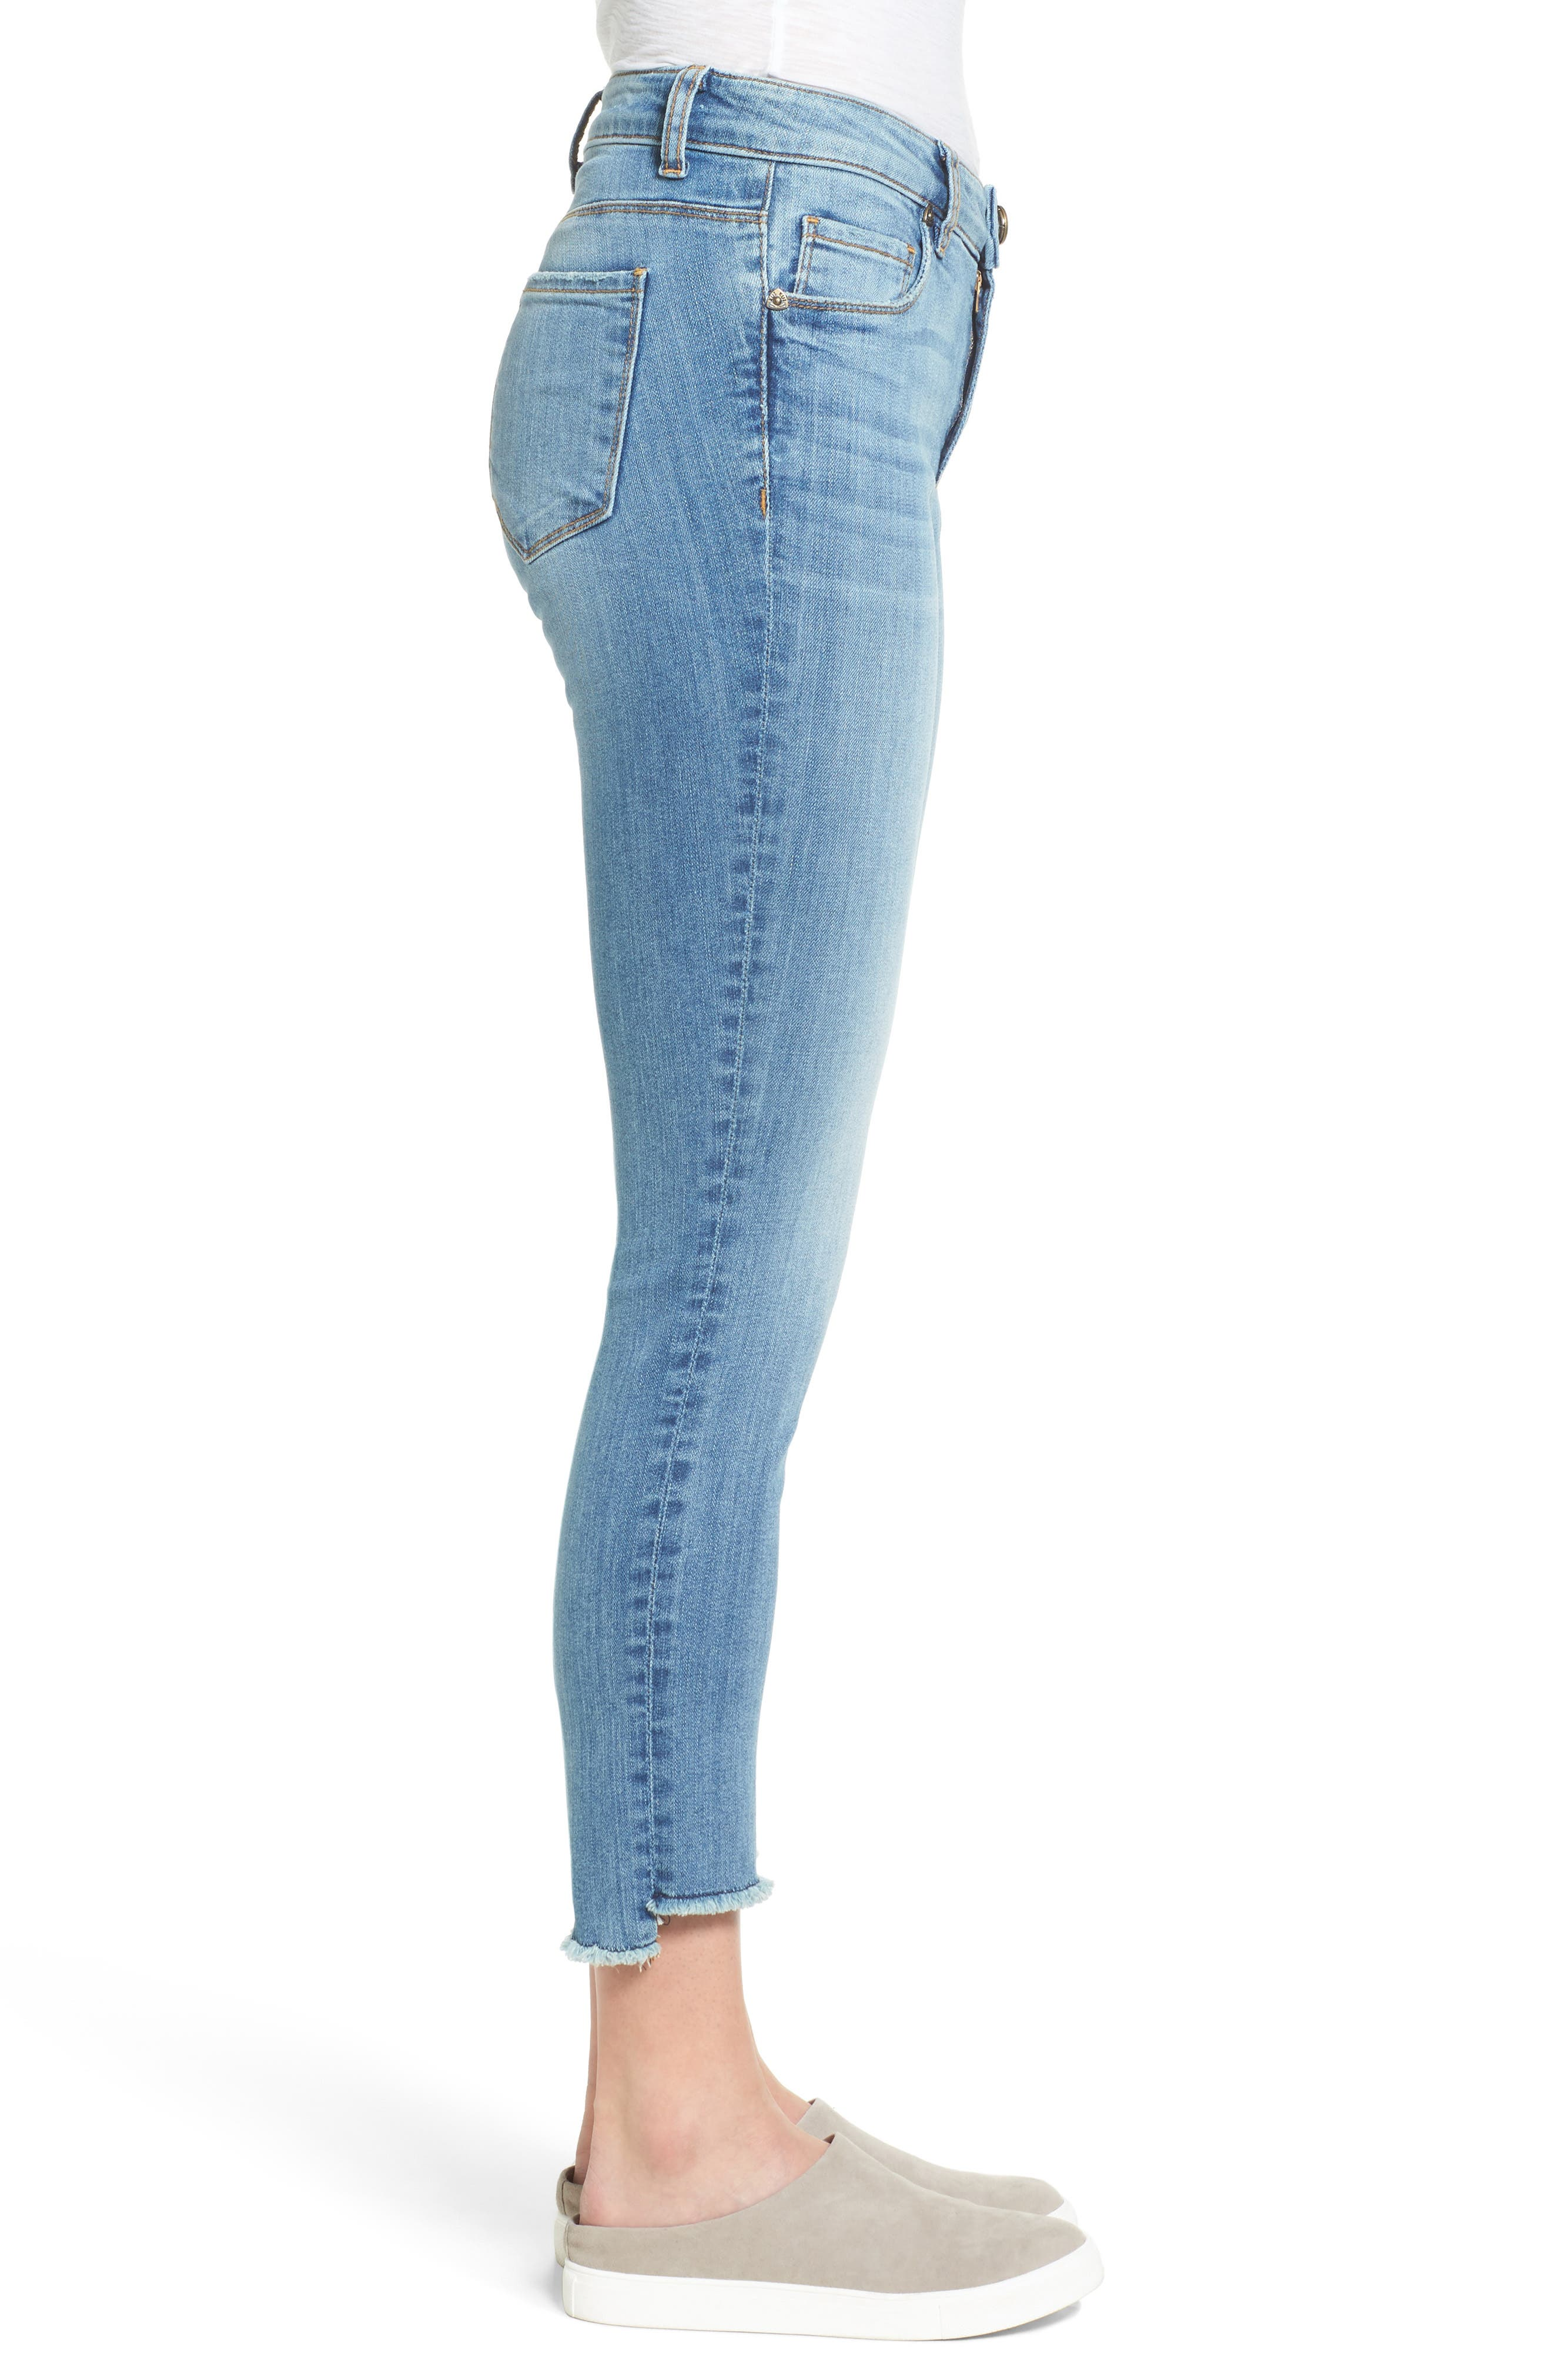 Alternate Image 3  - KUT from the Kloth Reese Frayed Straight Leg Ankle Jeans (Participation)